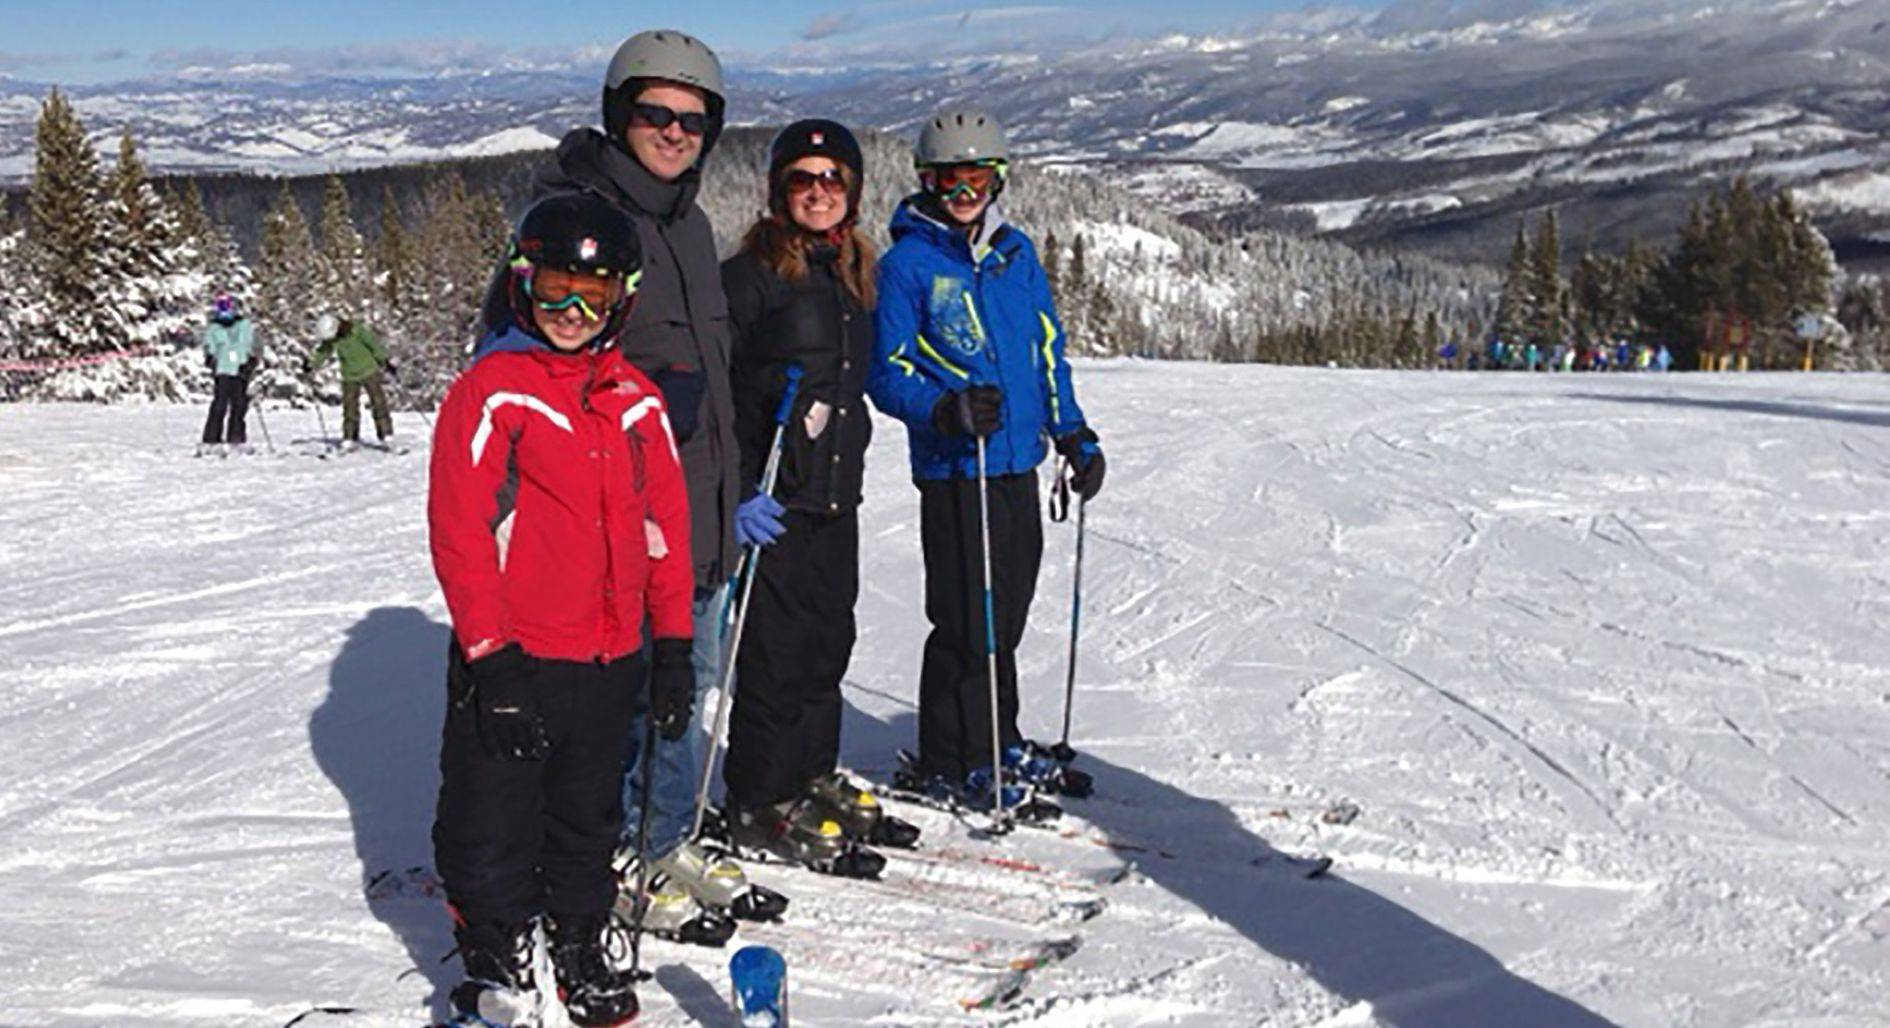 Andrea Guthmann spends a fun day on the ski slopes with her family during a recent vacation in Colorado.